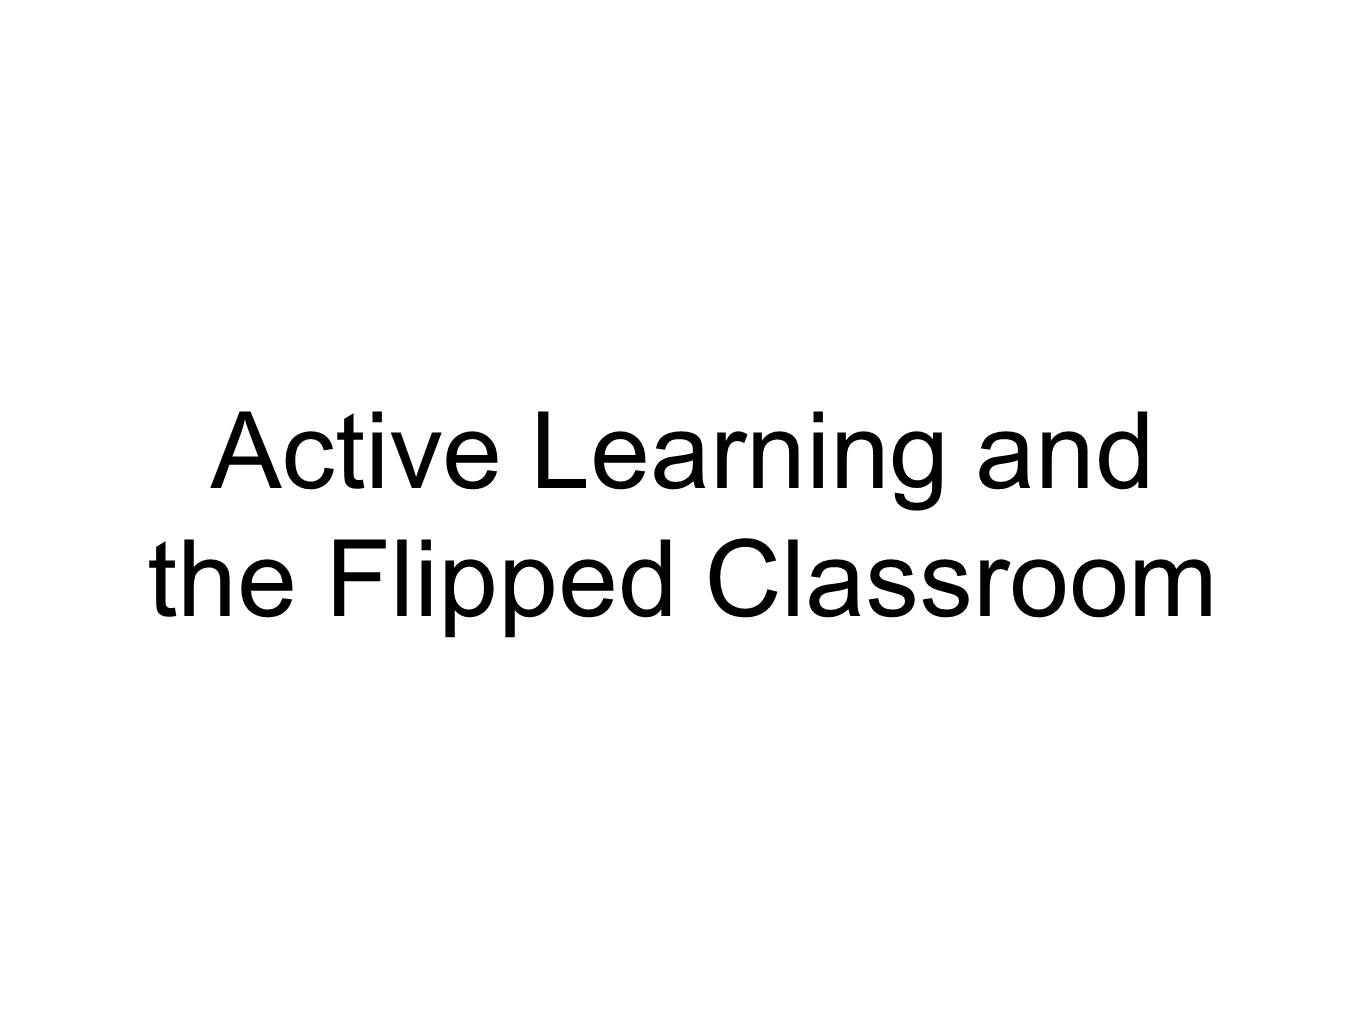 Active Learning in the Flipped Classroom